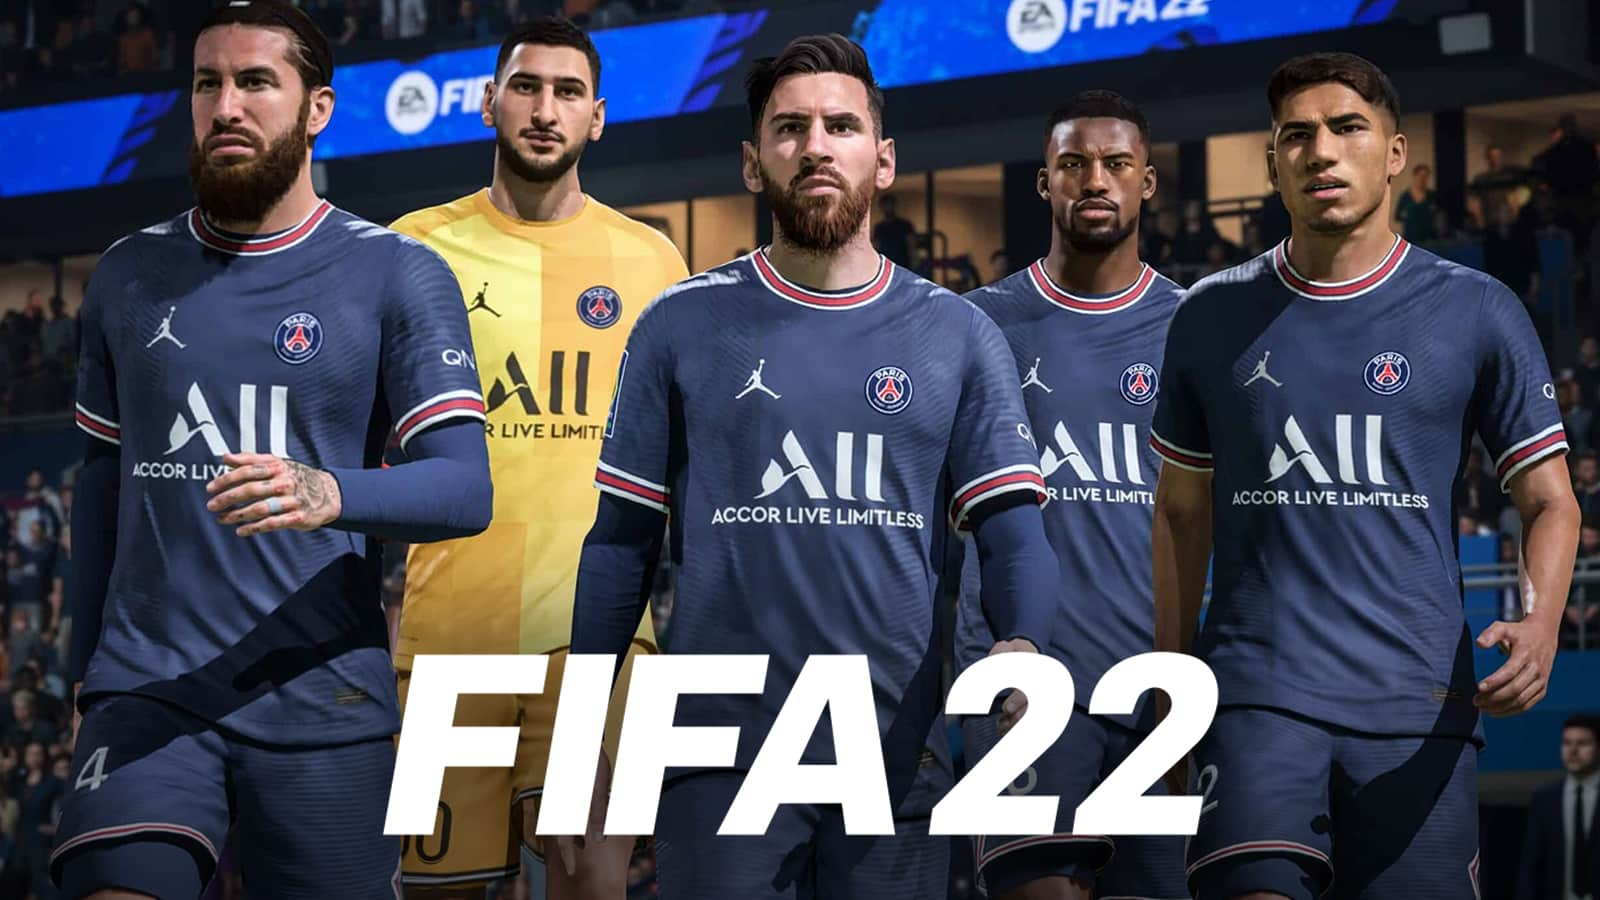 Download FIFA 22 Apk Messi to PSG Android